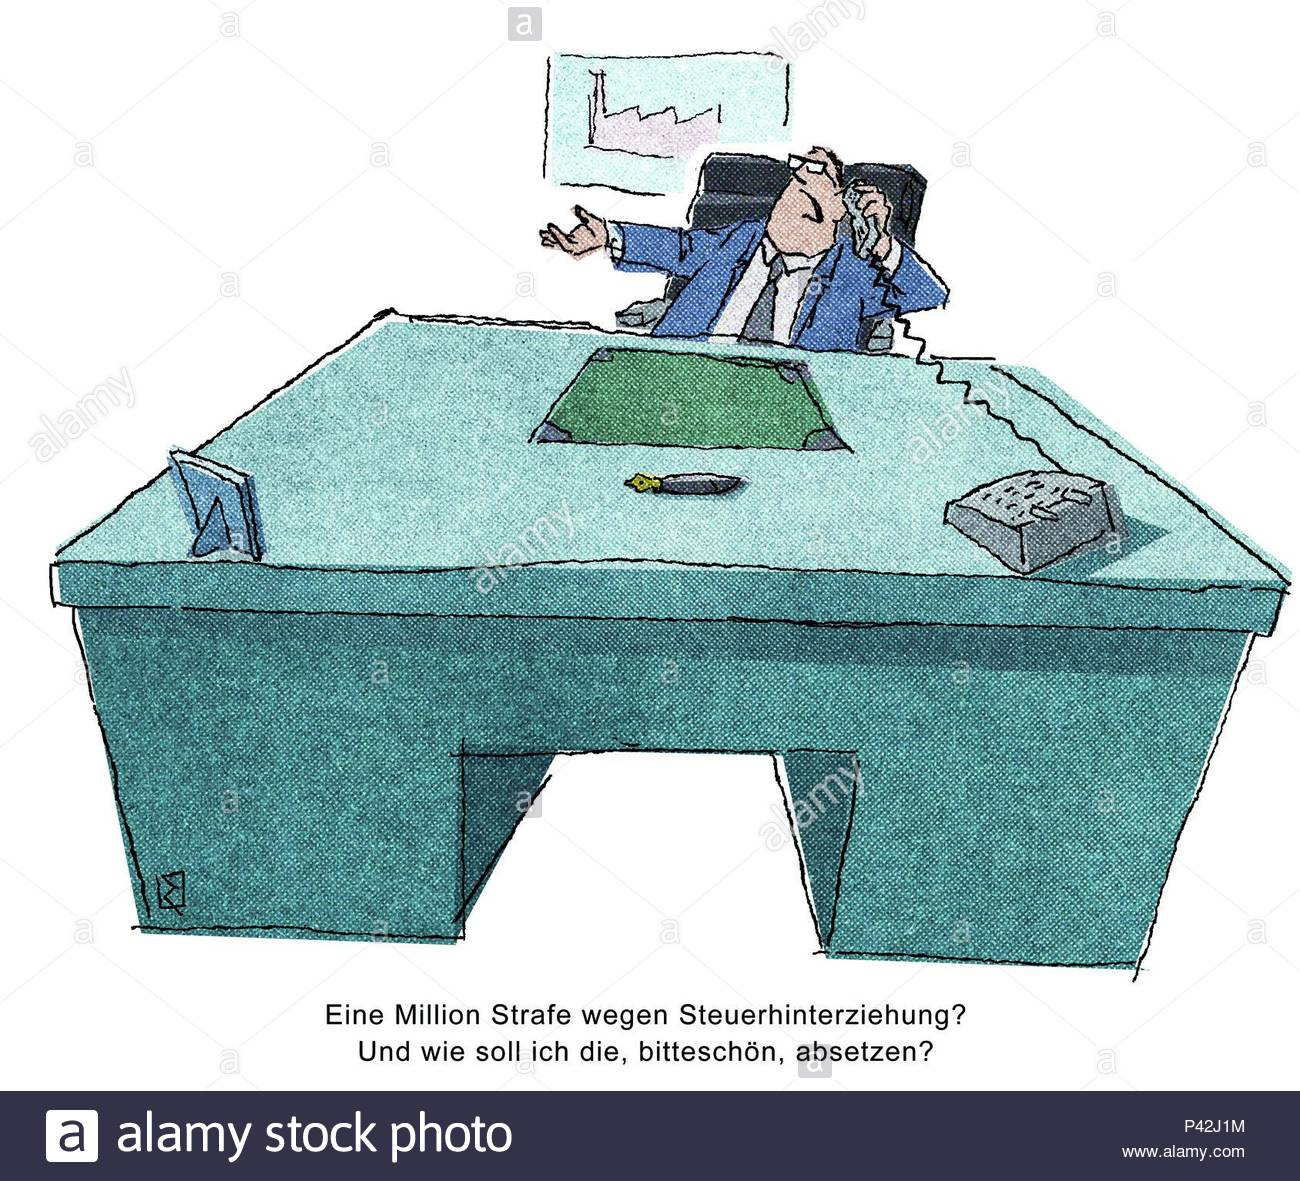 Home Office Absetzen Boss Cartoon Stock Photo 209041104 Alamy